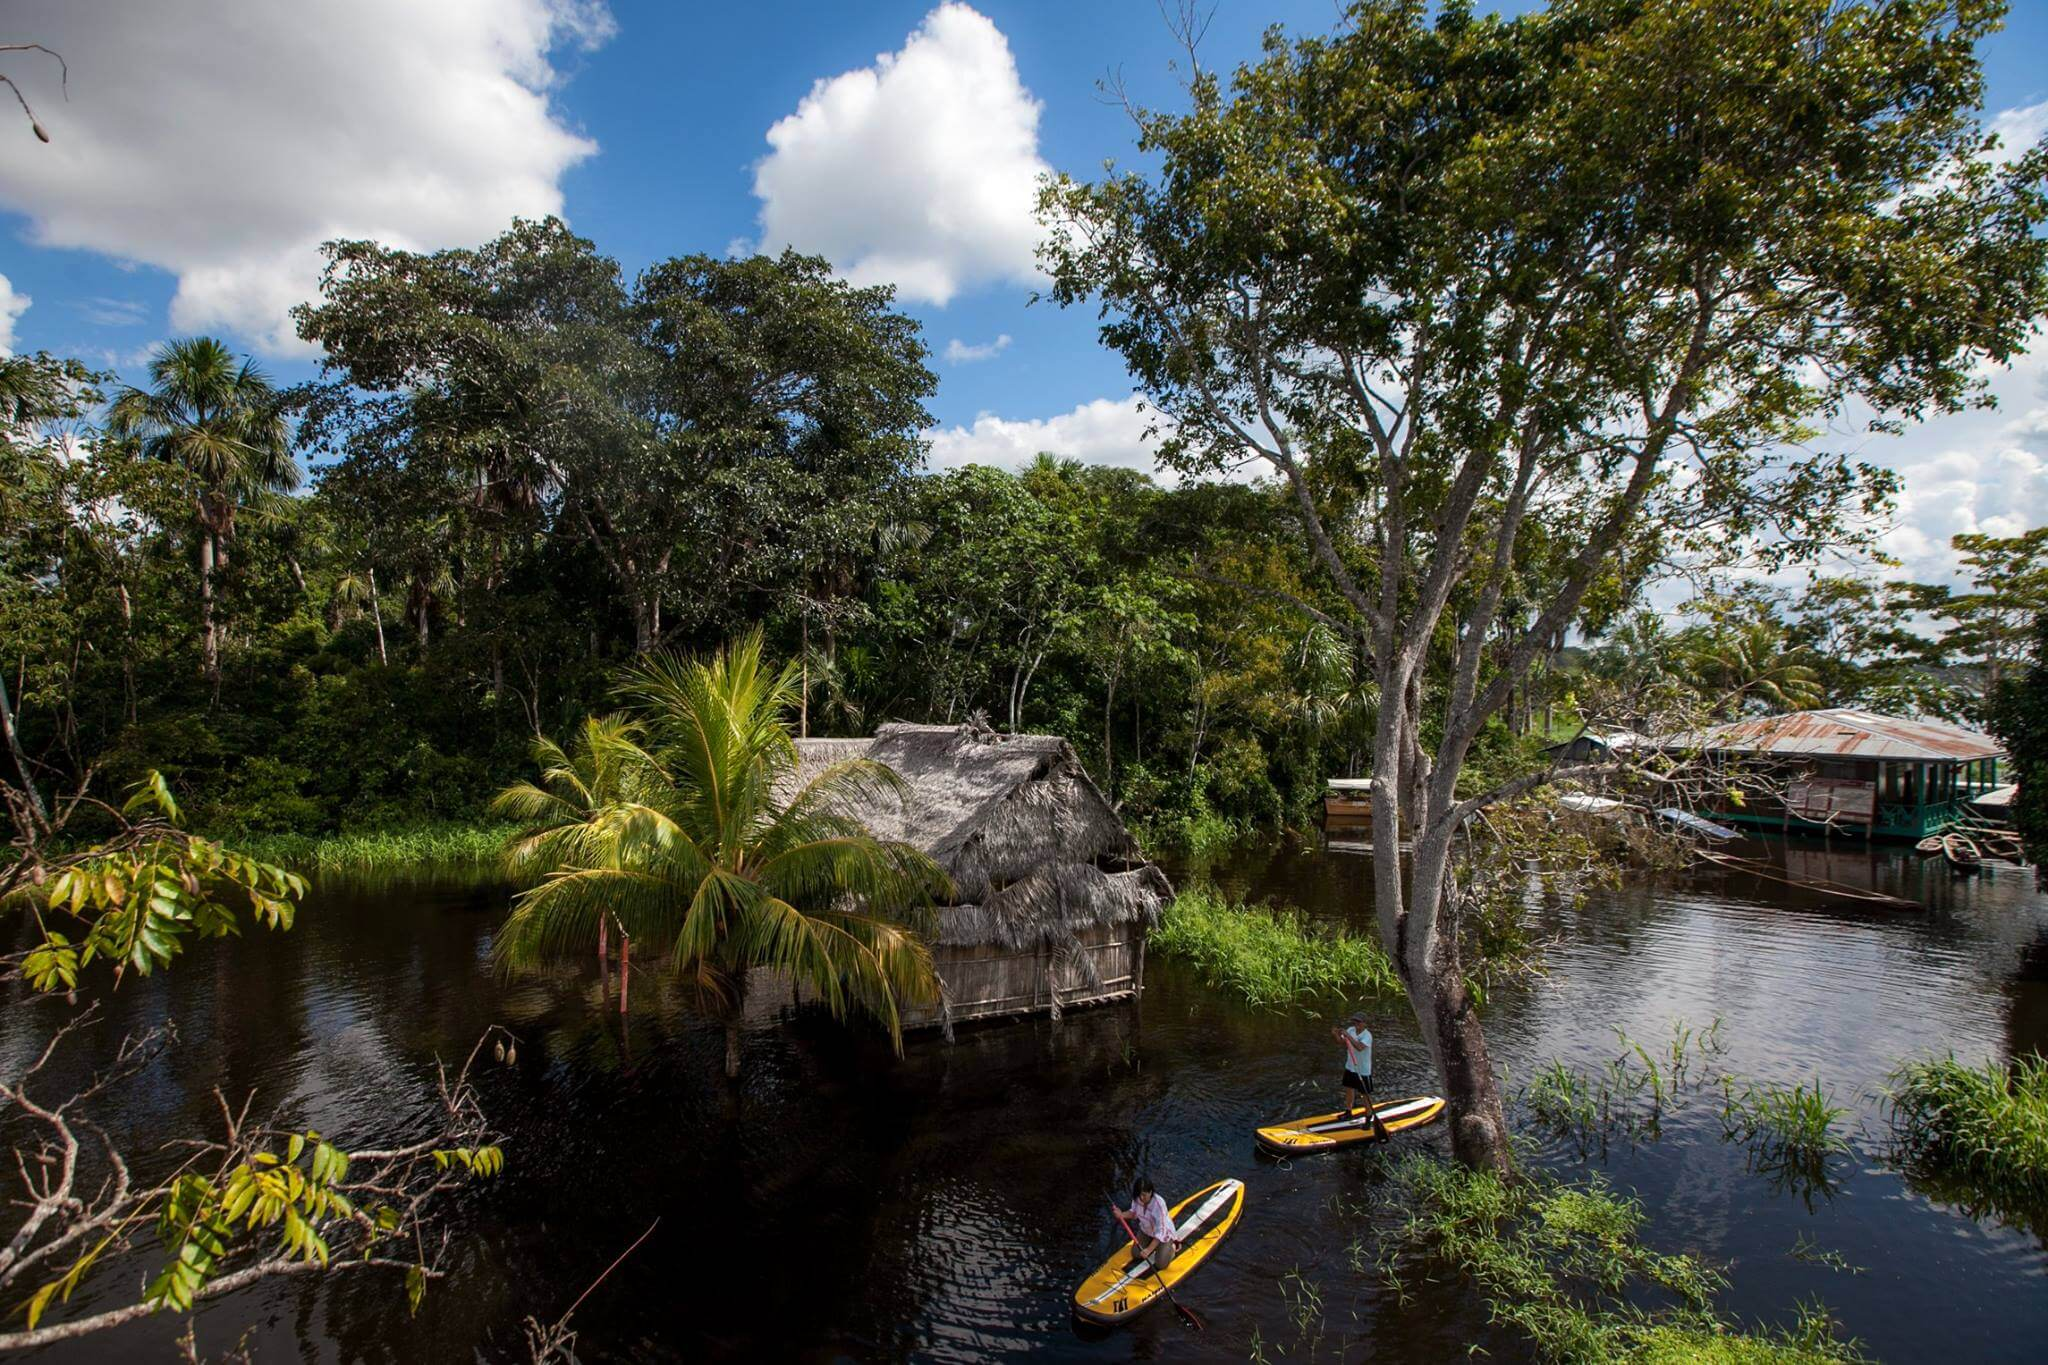 Taking in the jungle views on SUP boards in the Peruvian Amazon